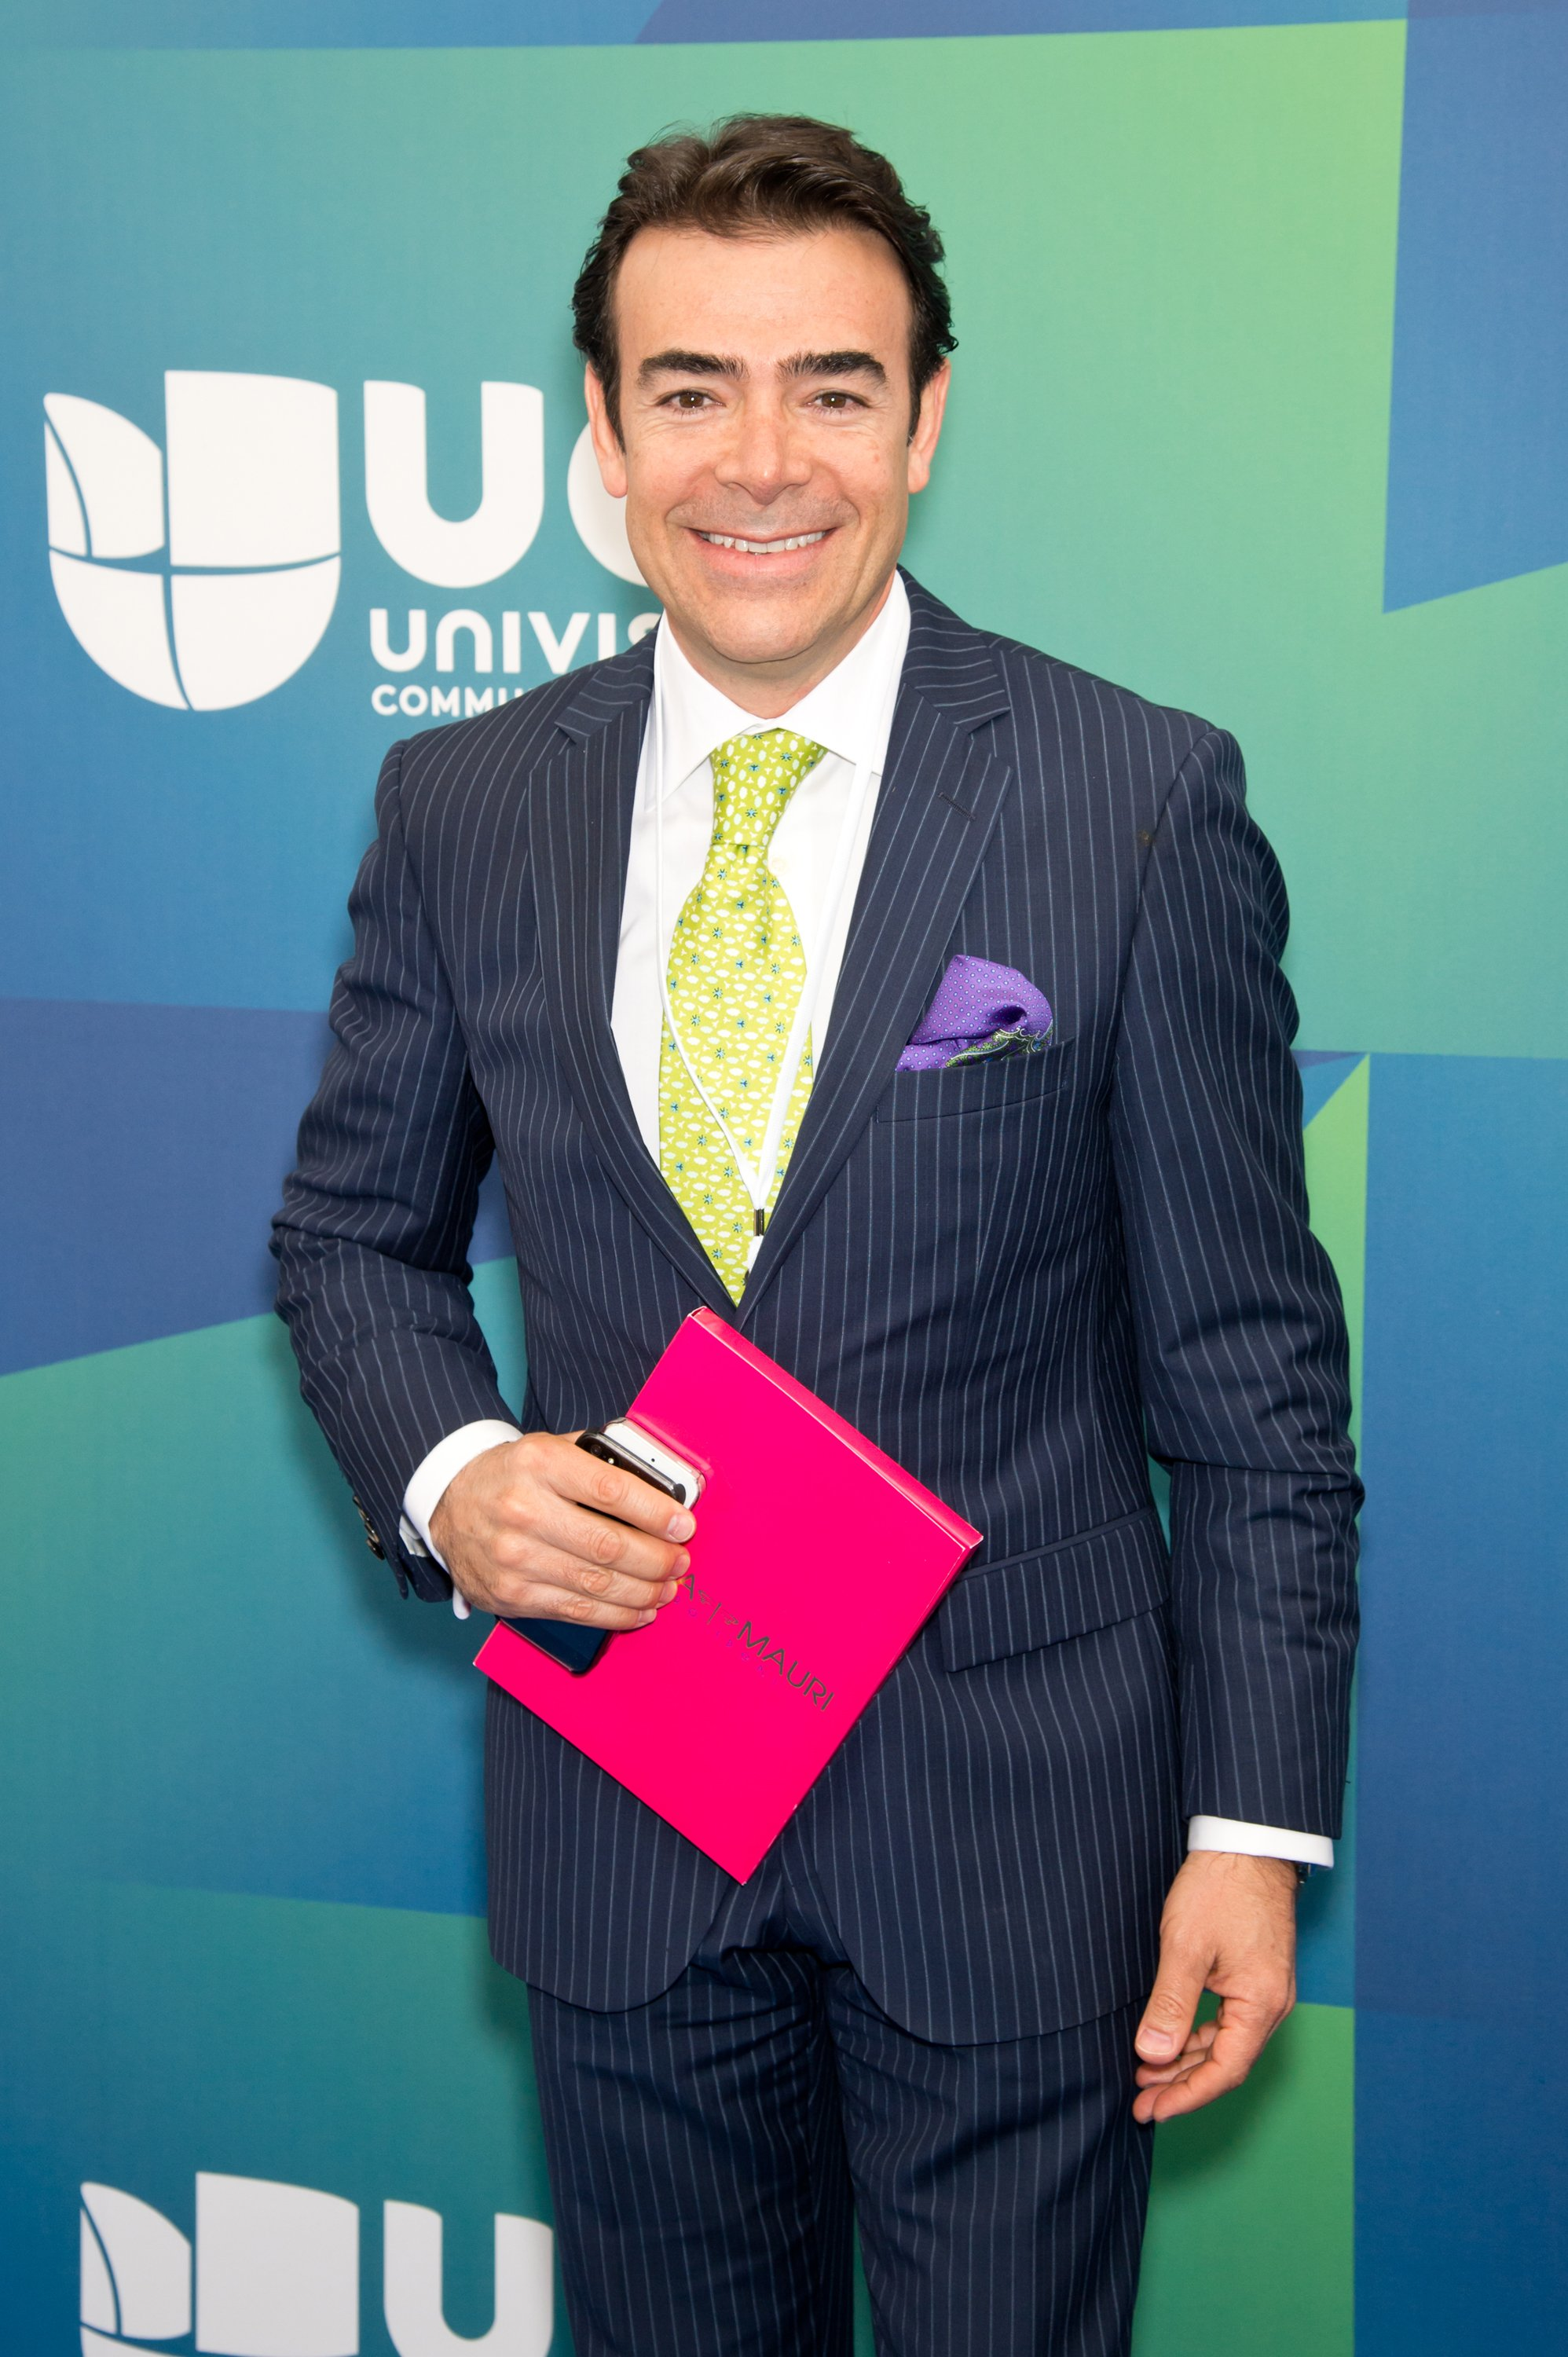 Tono Mauri attends the 2014 Univision Upfront at Gotham Hall on May 13, 2014 in New York City | Photo: Getty Images